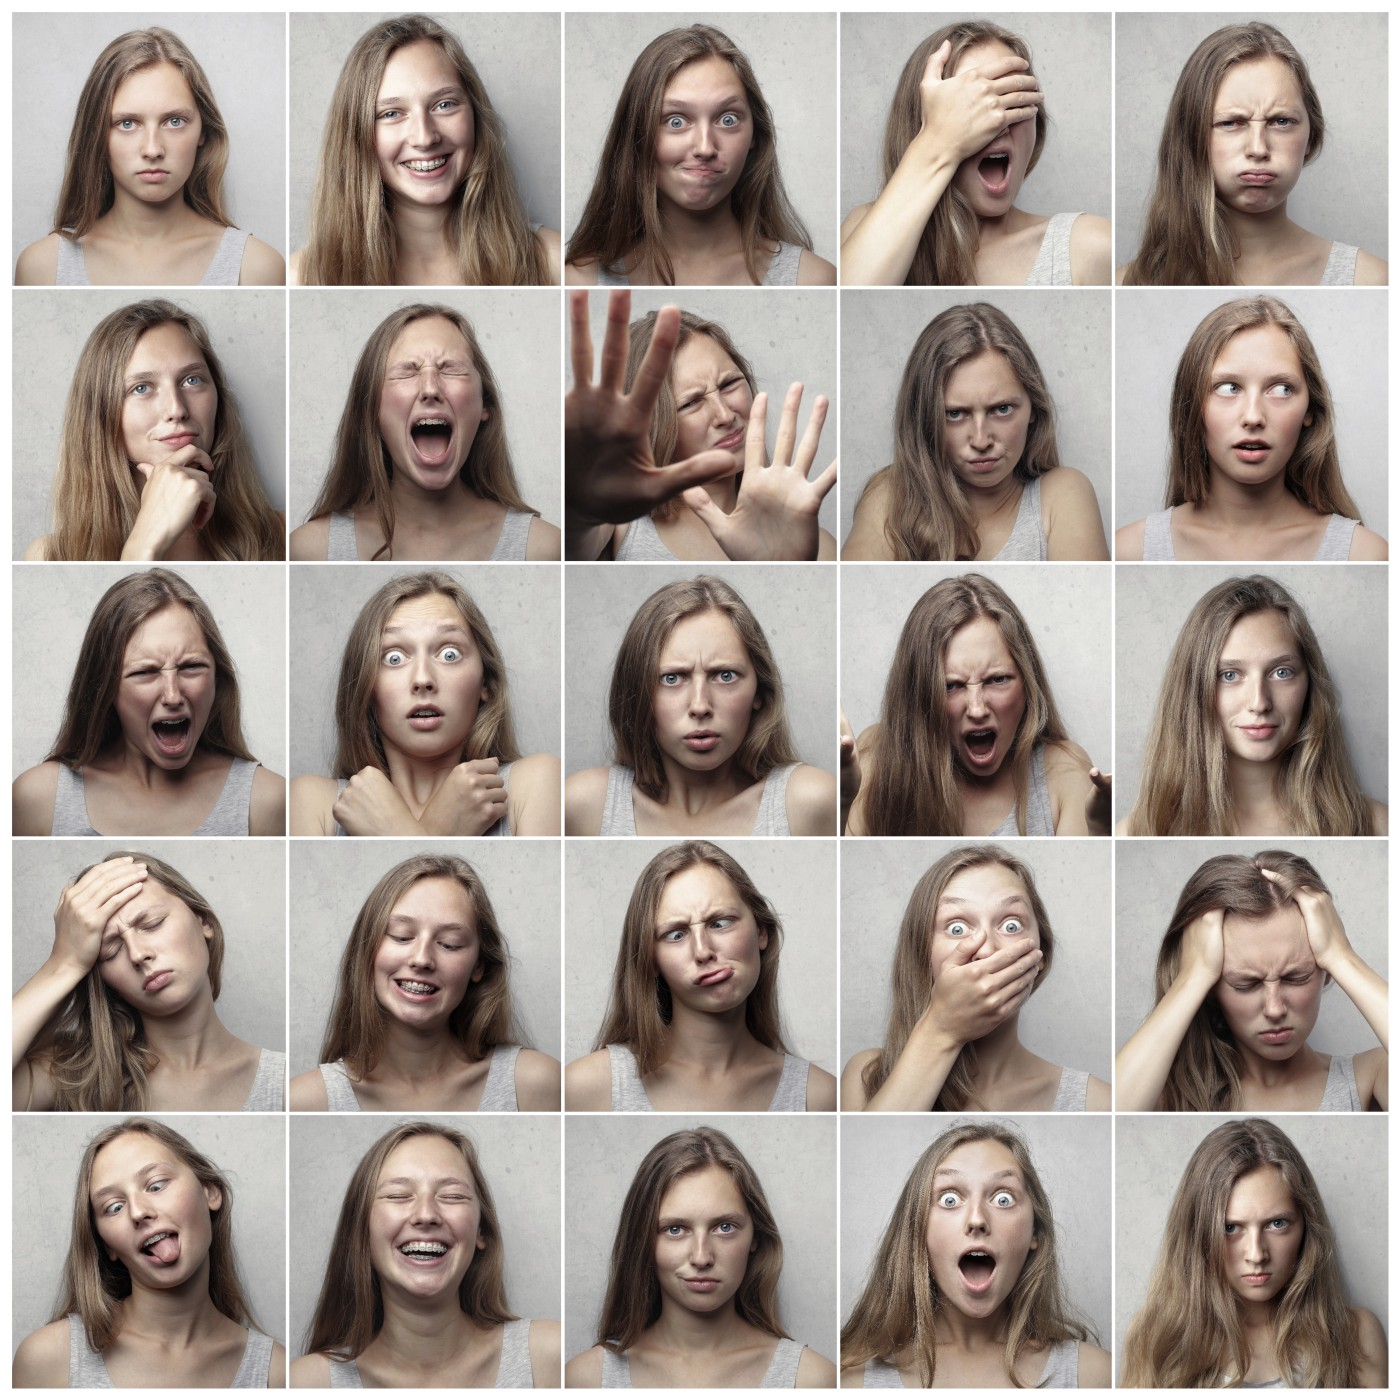 Photo of various emotions.